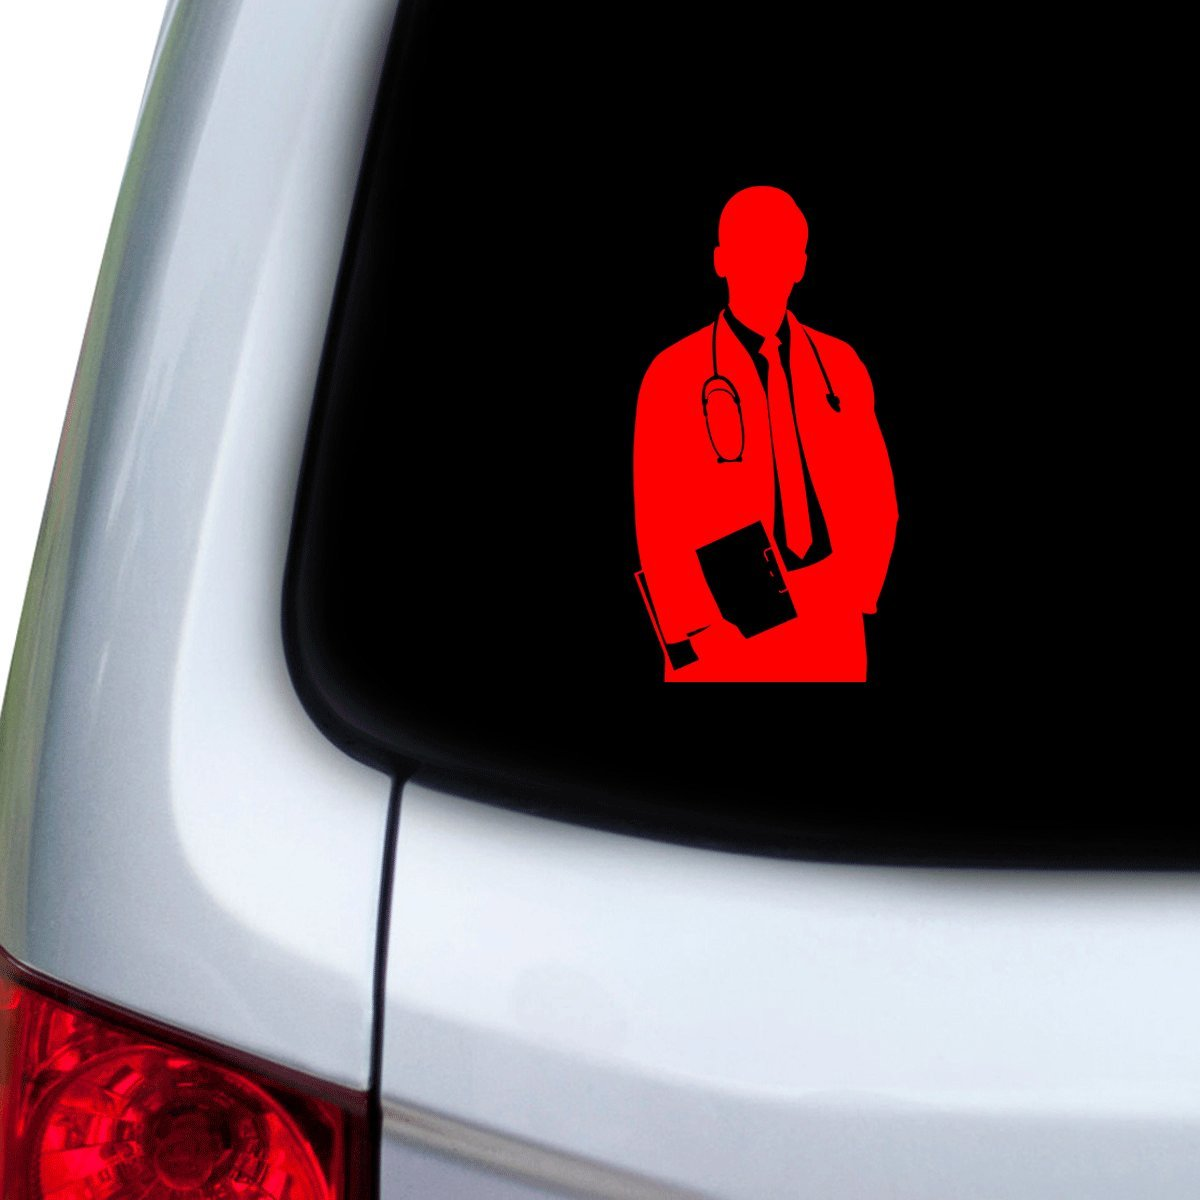 Hoods Doors Red StickAny Car and Auto Decal Series Doctor Body Sticker for Windows